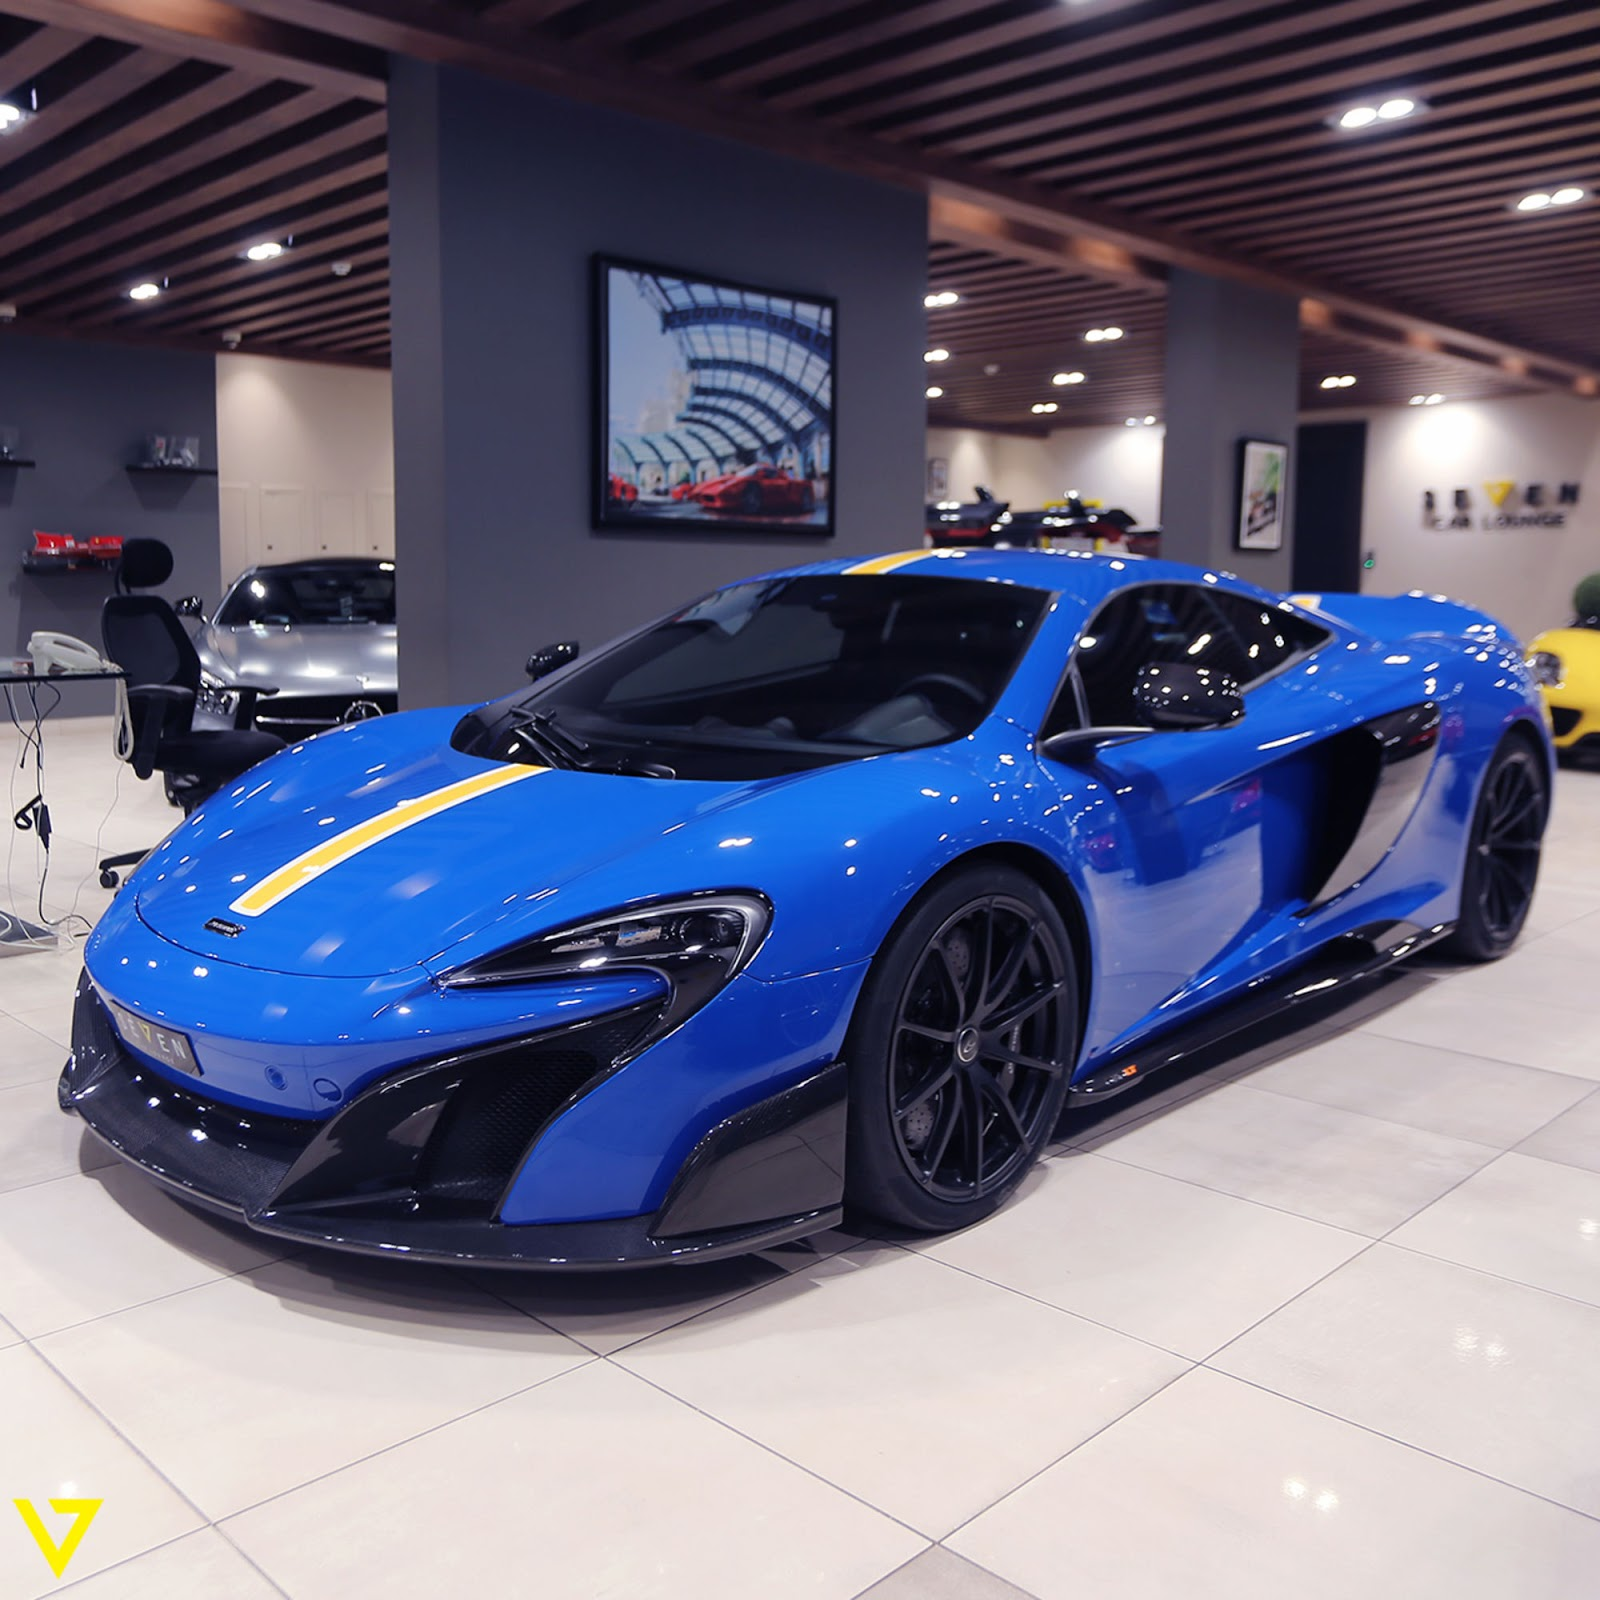 You'll Either Love Or Hate This Blue and Yellow McLaren 675LT